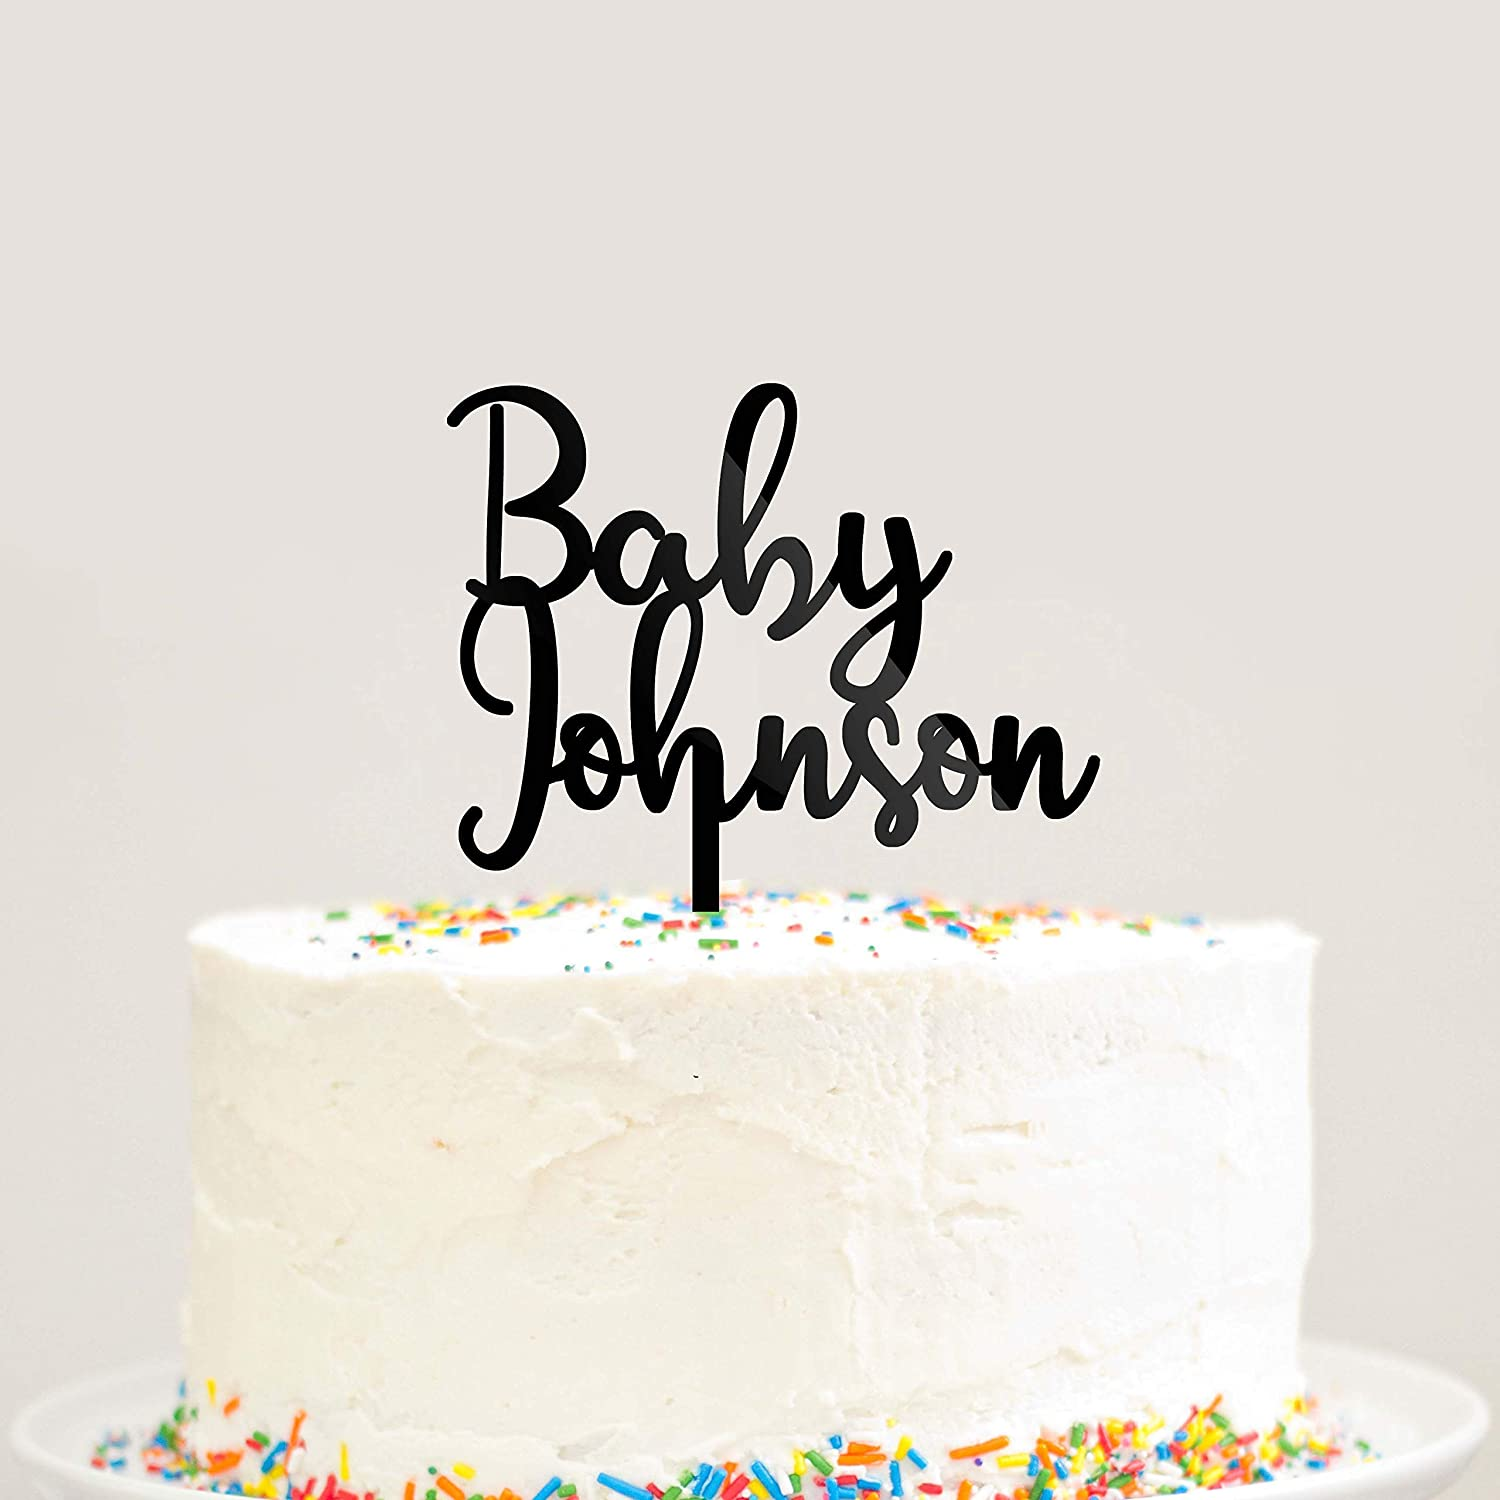 Custom Personalized Baby Last Name Baby Shower Cake Topper Modern Cursive Script Cake Topper Black Acrylic Pick